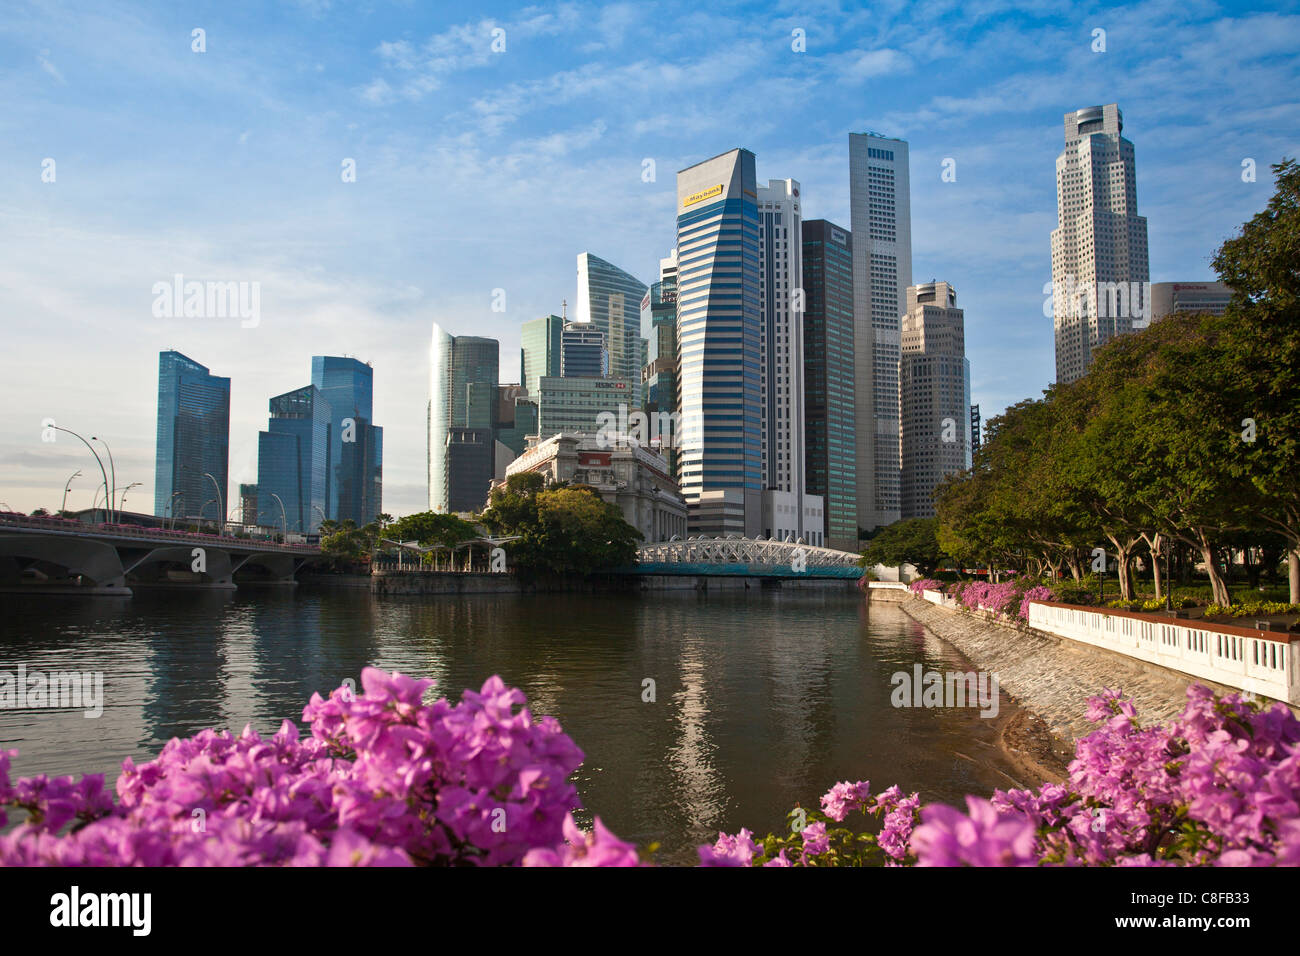 Singapore, Asia, Downtown, Skyline, blocks of flats, high-rise buildings, skyscrapers, flowers, park, shore - Stock Image